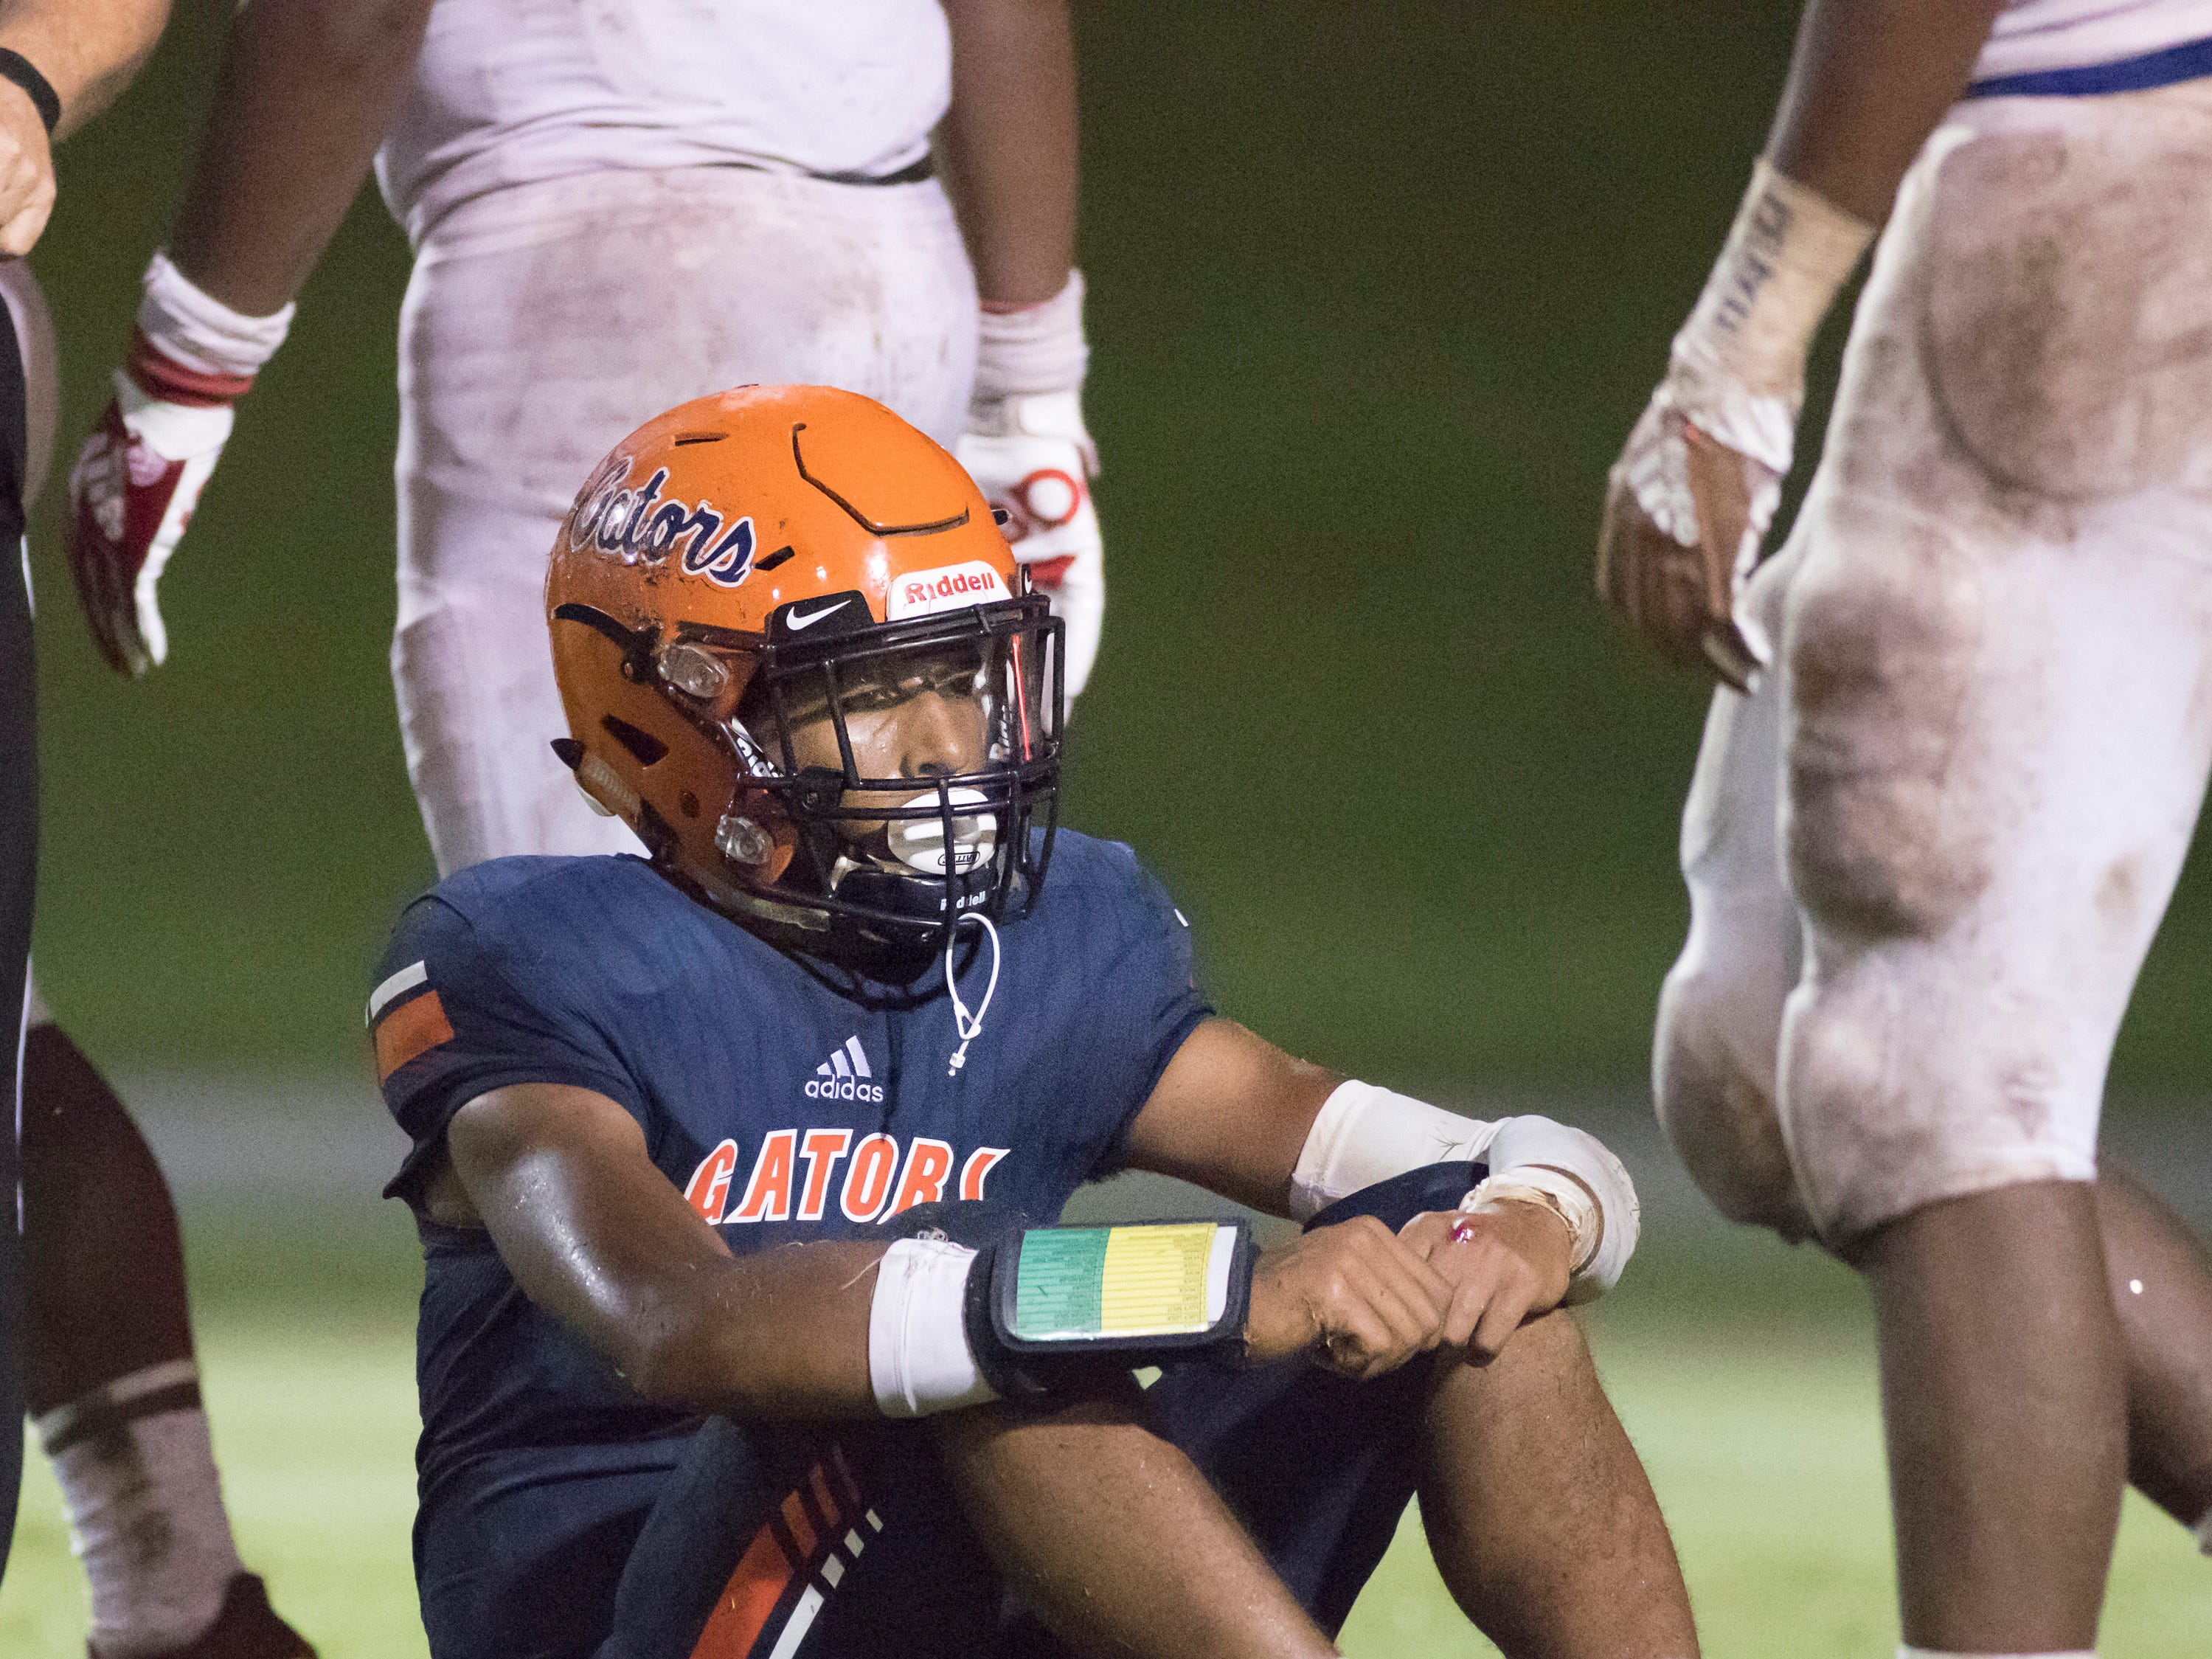 A frustrated Av Smith (5) sits after getting sacked during the Pine Forest vs Escambia football game at Escambia High School in Pensacola on Friday, September 28, 2018.